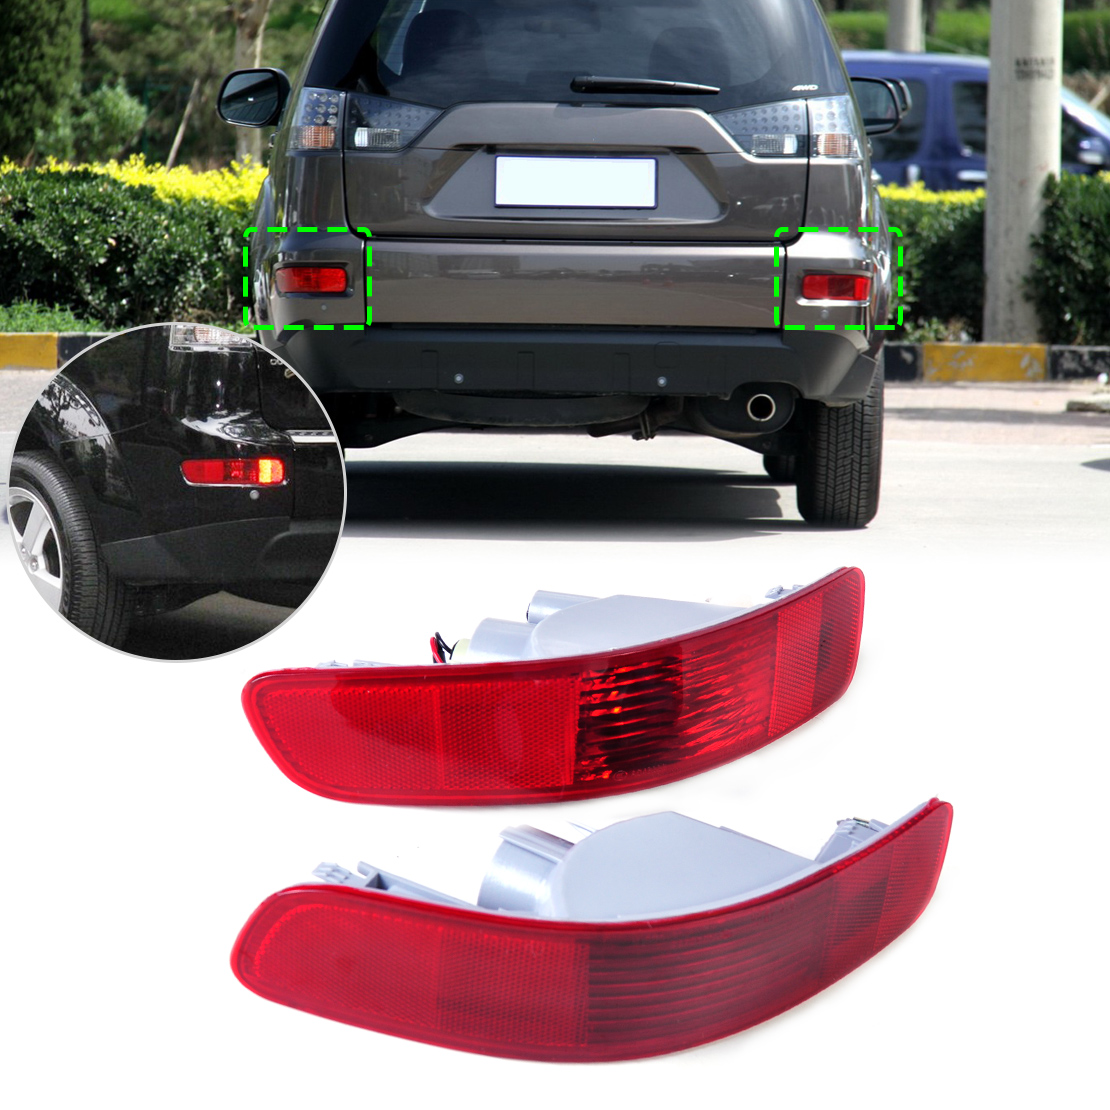 beler 2x Rear Right Left Tail Fog Light Lamp Reflector 8352A005 8337A015 for Mitsubishi Outlander 2007 2008 2009 2010 2011 2012 car fog light assembly for mitsubishi pajero 2007 2008 2009 left